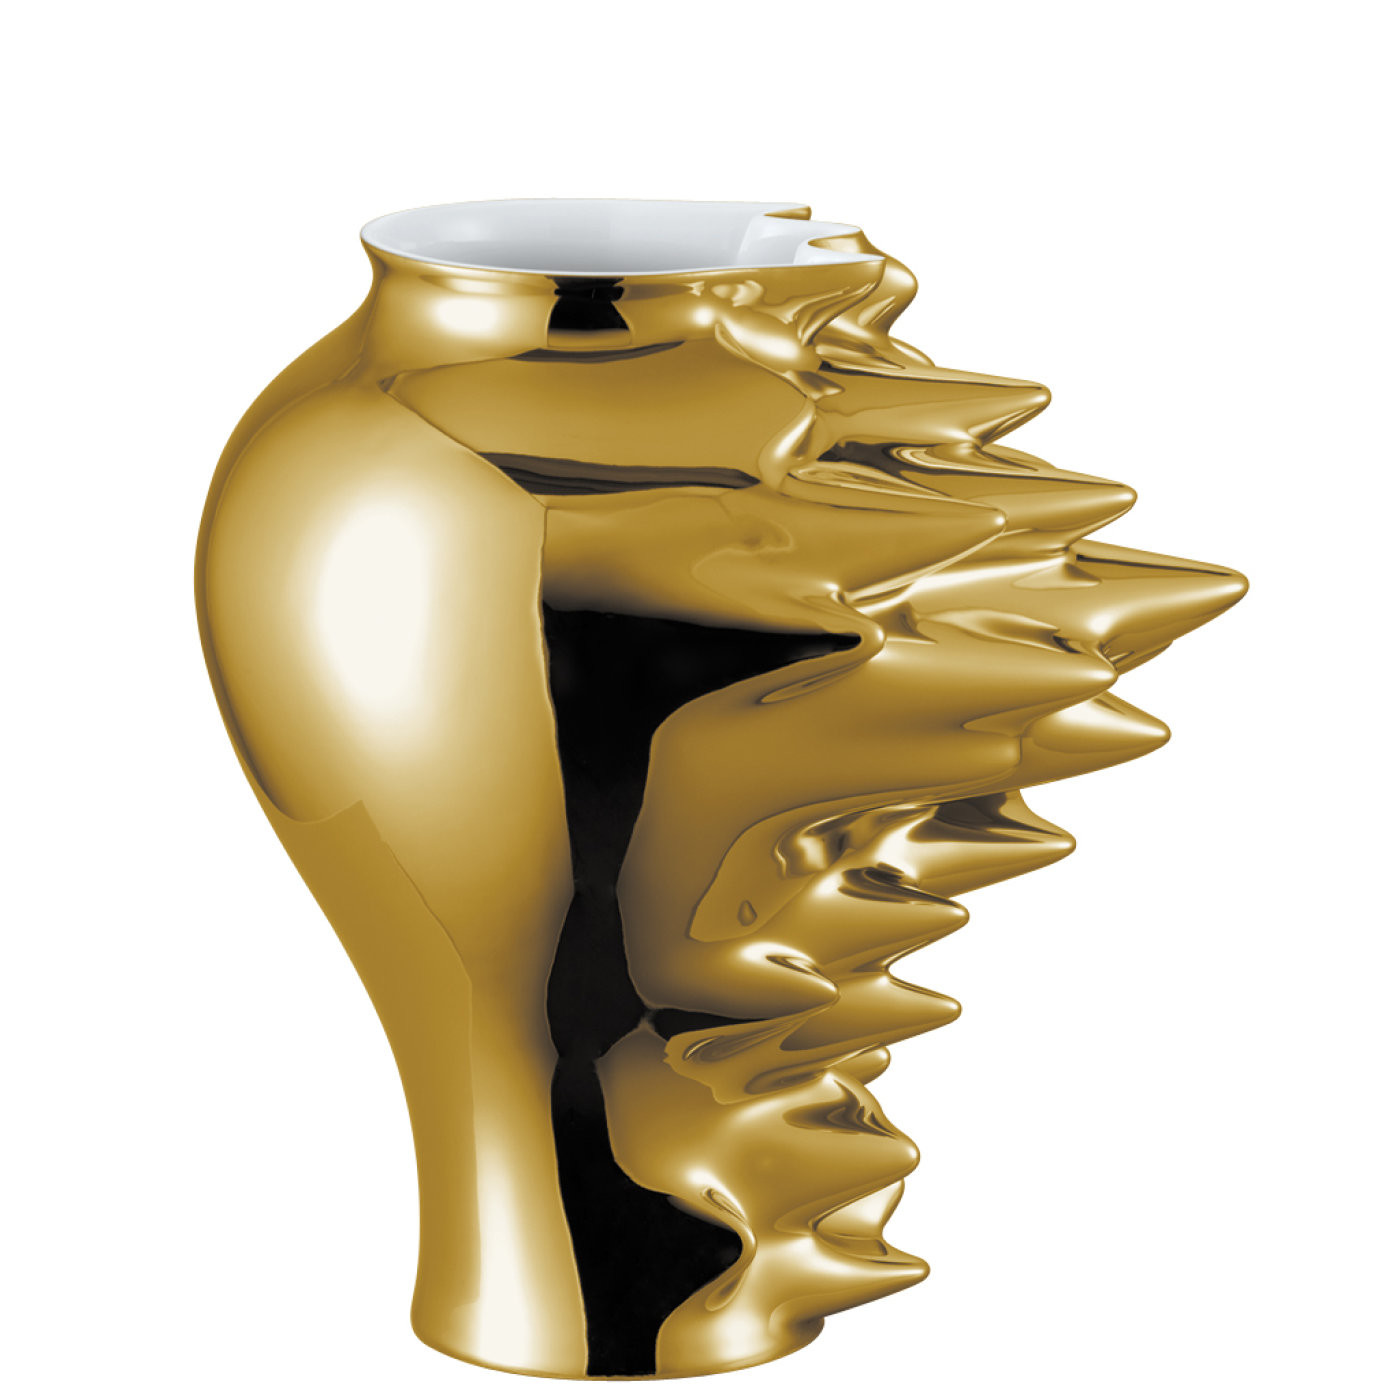 rosenthal vases for sale of rosenthal studio line fast rosenthal porcelain online shop intended for fast gold titanisiert vase 27 cm